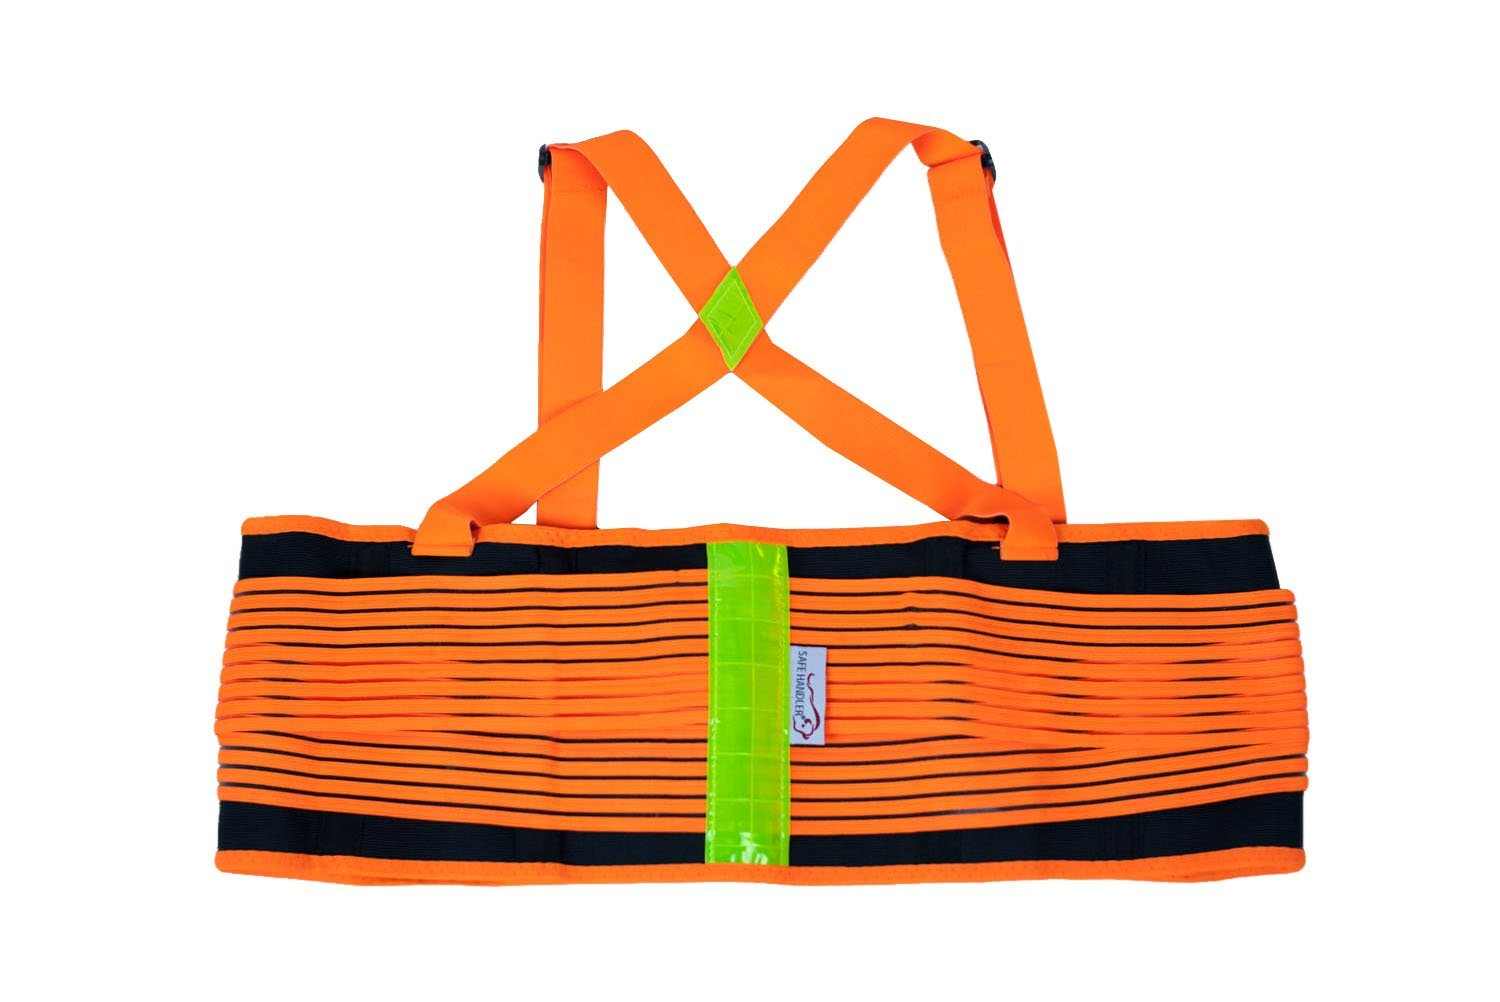 SAFE HANDLER Lifting Support Weight Belt - Orange & Black Reflective| Lower Back Brace Protects & Relieves Back Pain, Support Belt with Dual Adjustable Straps and Breathable Mesh Panels, XXX-LARGE